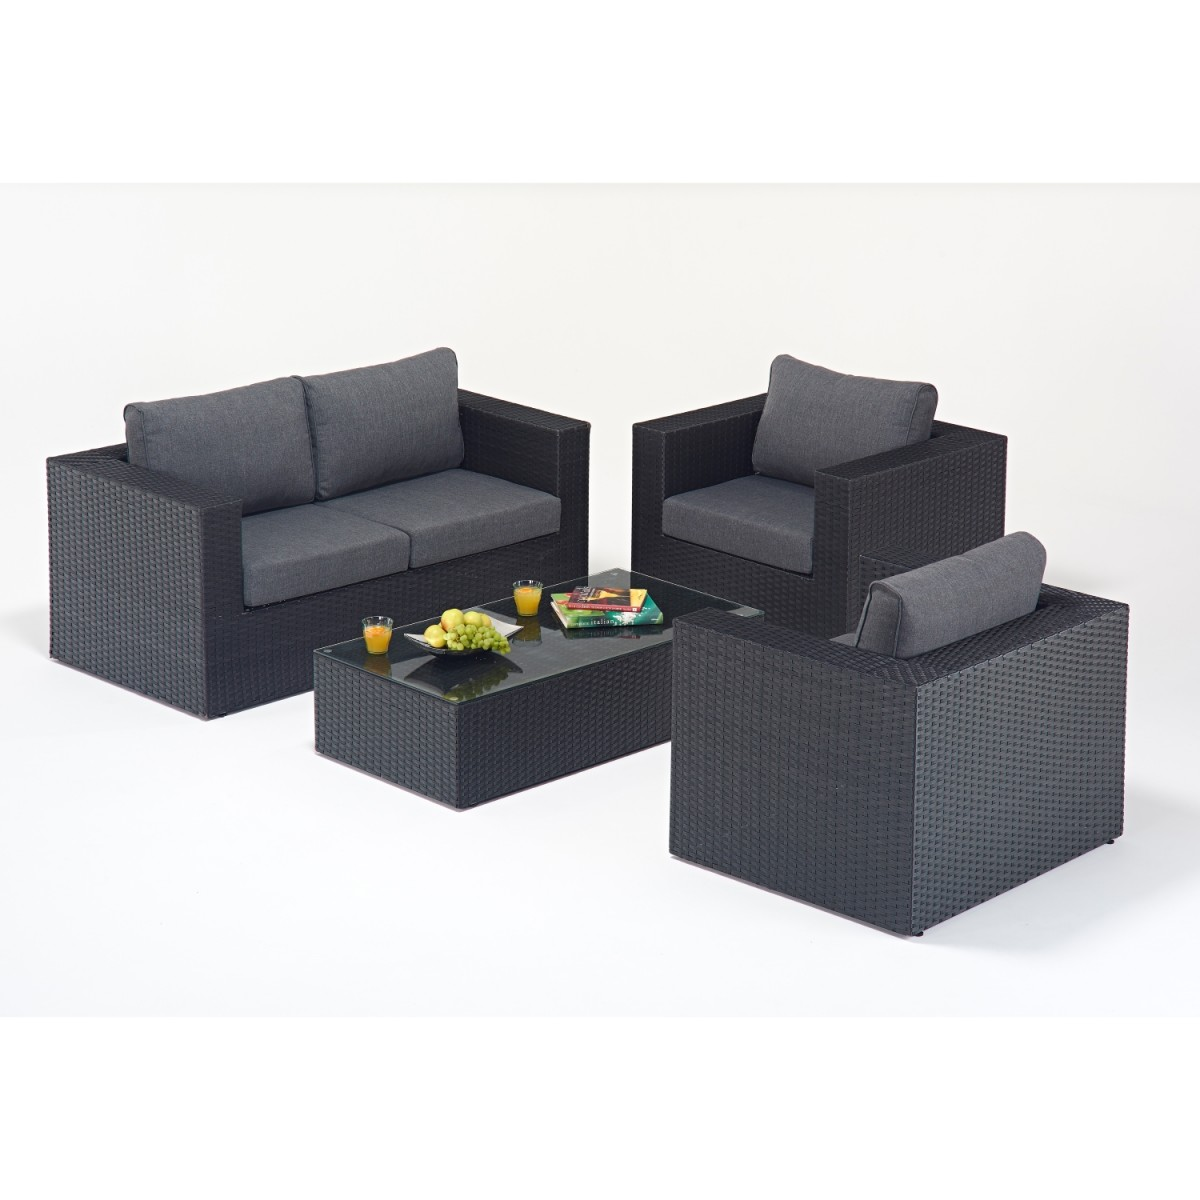 Small Sofa Set Images